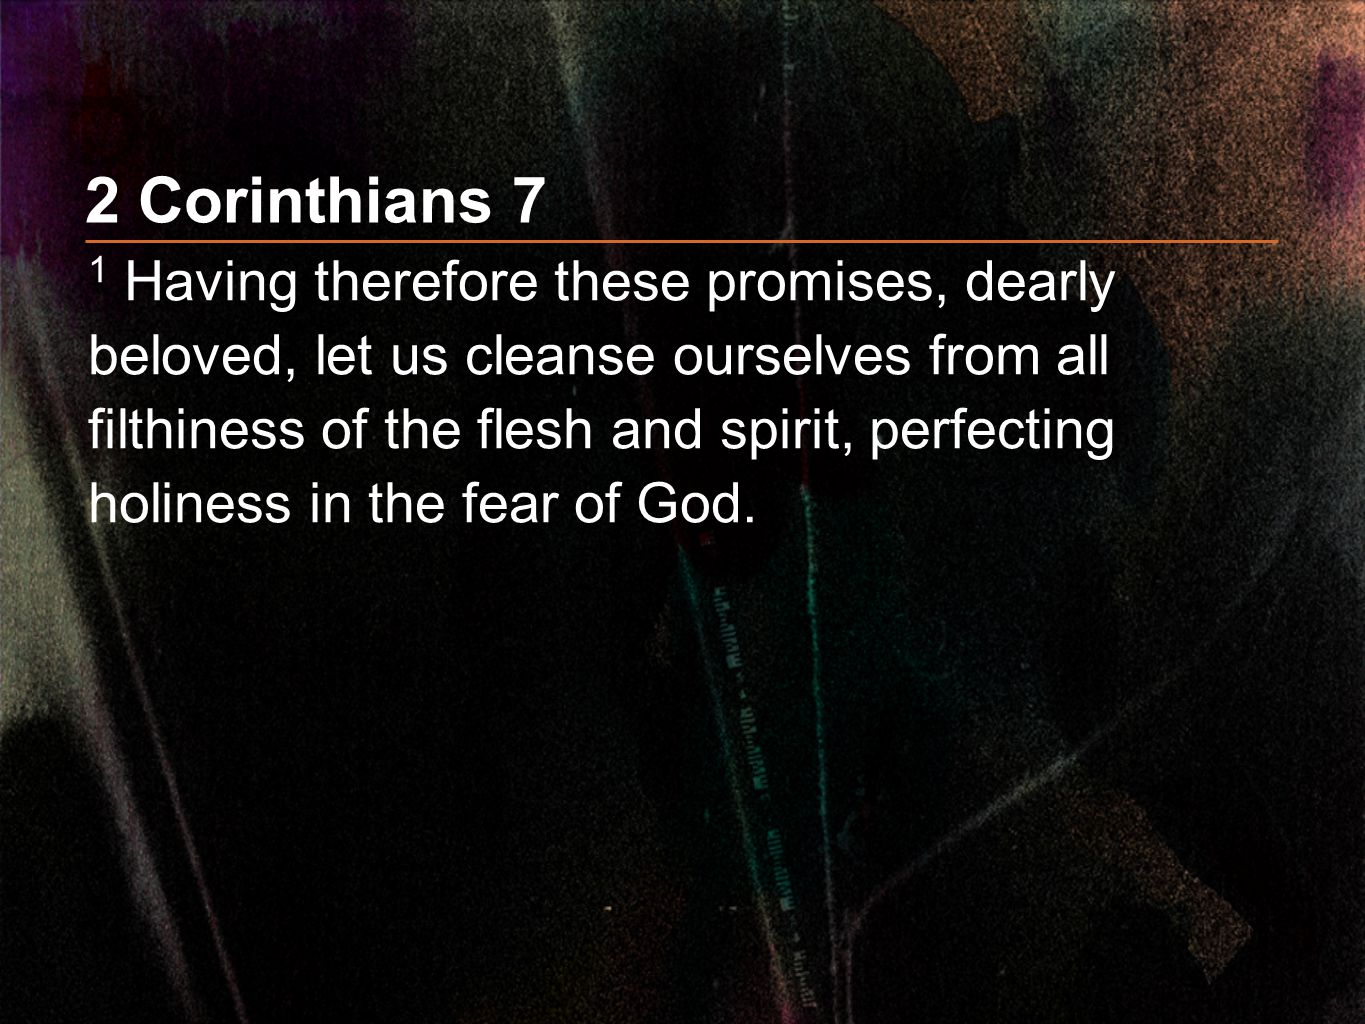 2 Corinthians 7 1 Having therefore these promises, dearly beloved, let us cleanse ourselves from all filthiness of the flesh and spirit, perfecting holiness in the fear of God.